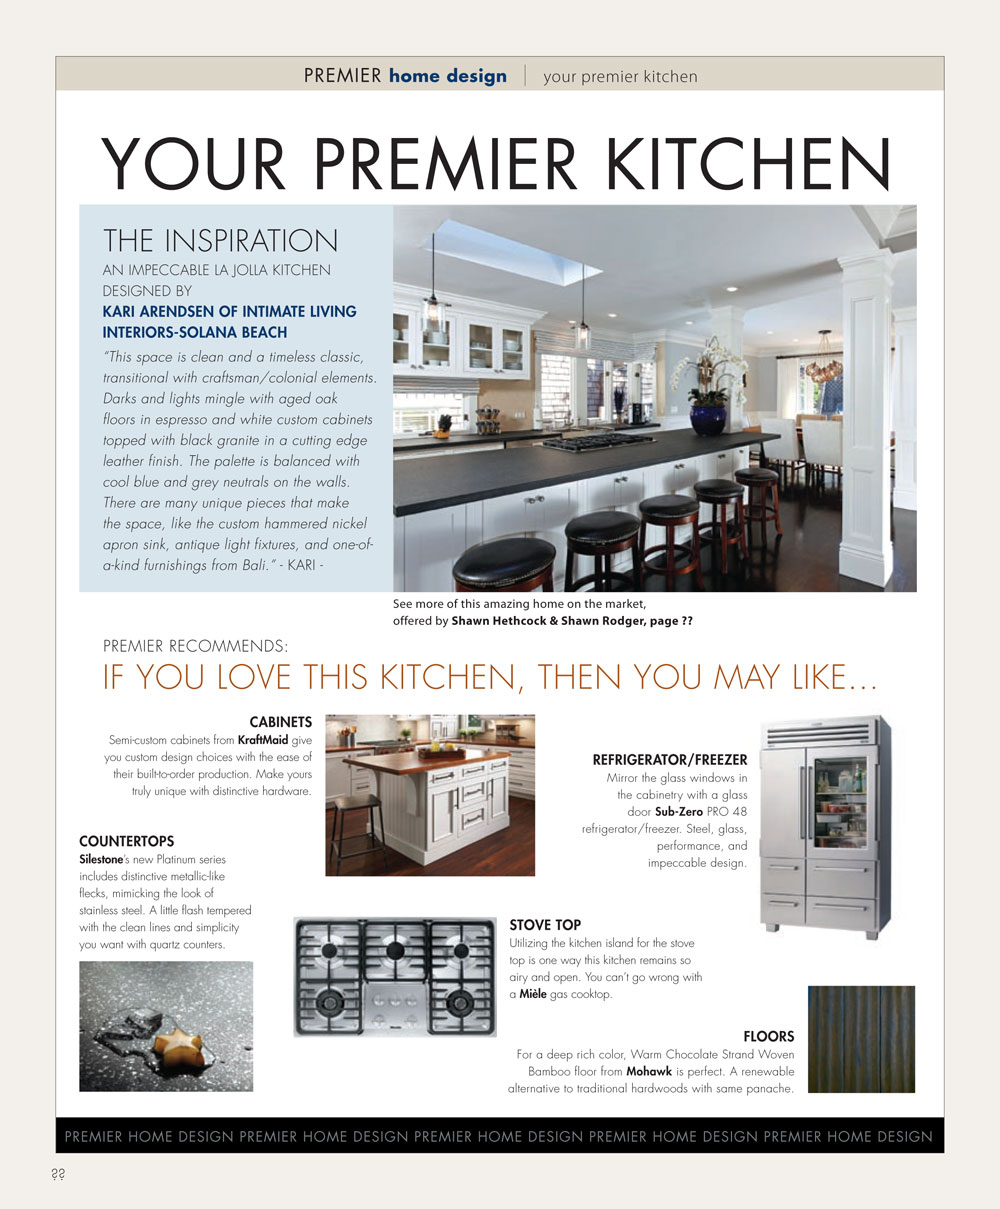 YOUR PREMIER KITCHEN | San Diego Premier